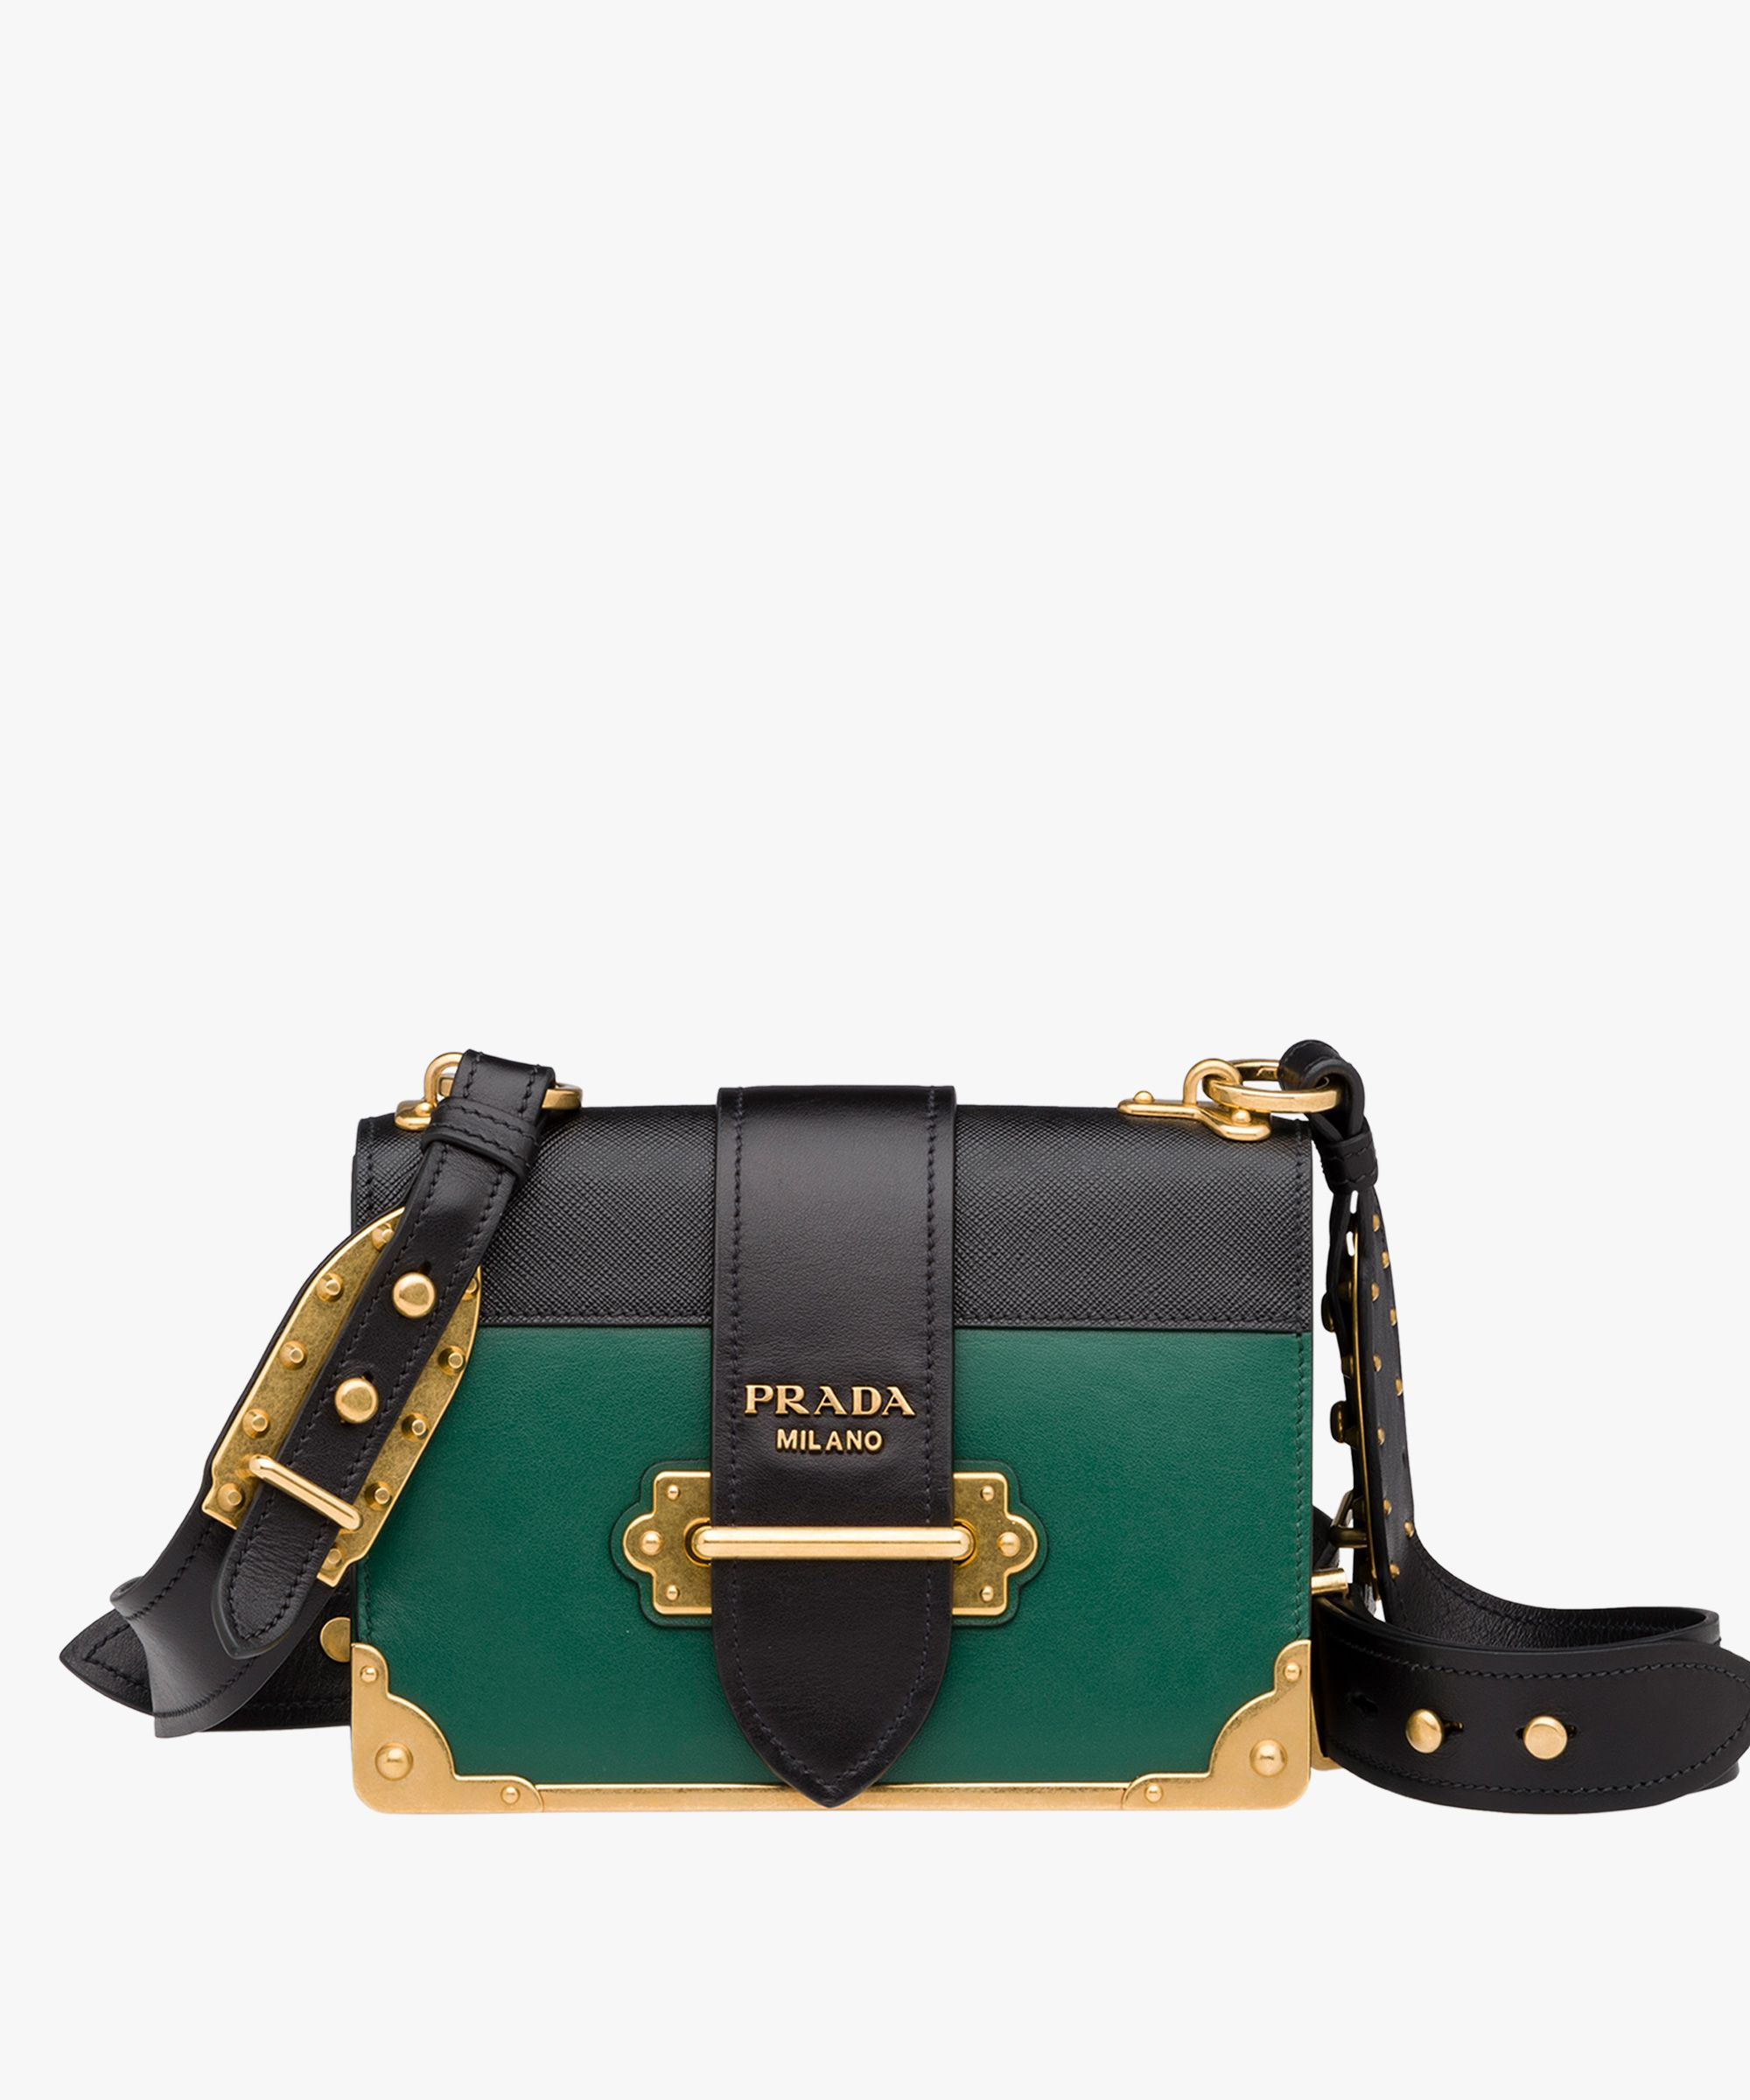 00b13424b273 Prada cahier bag - Billiard green + black, or terracotta or cornflower blue